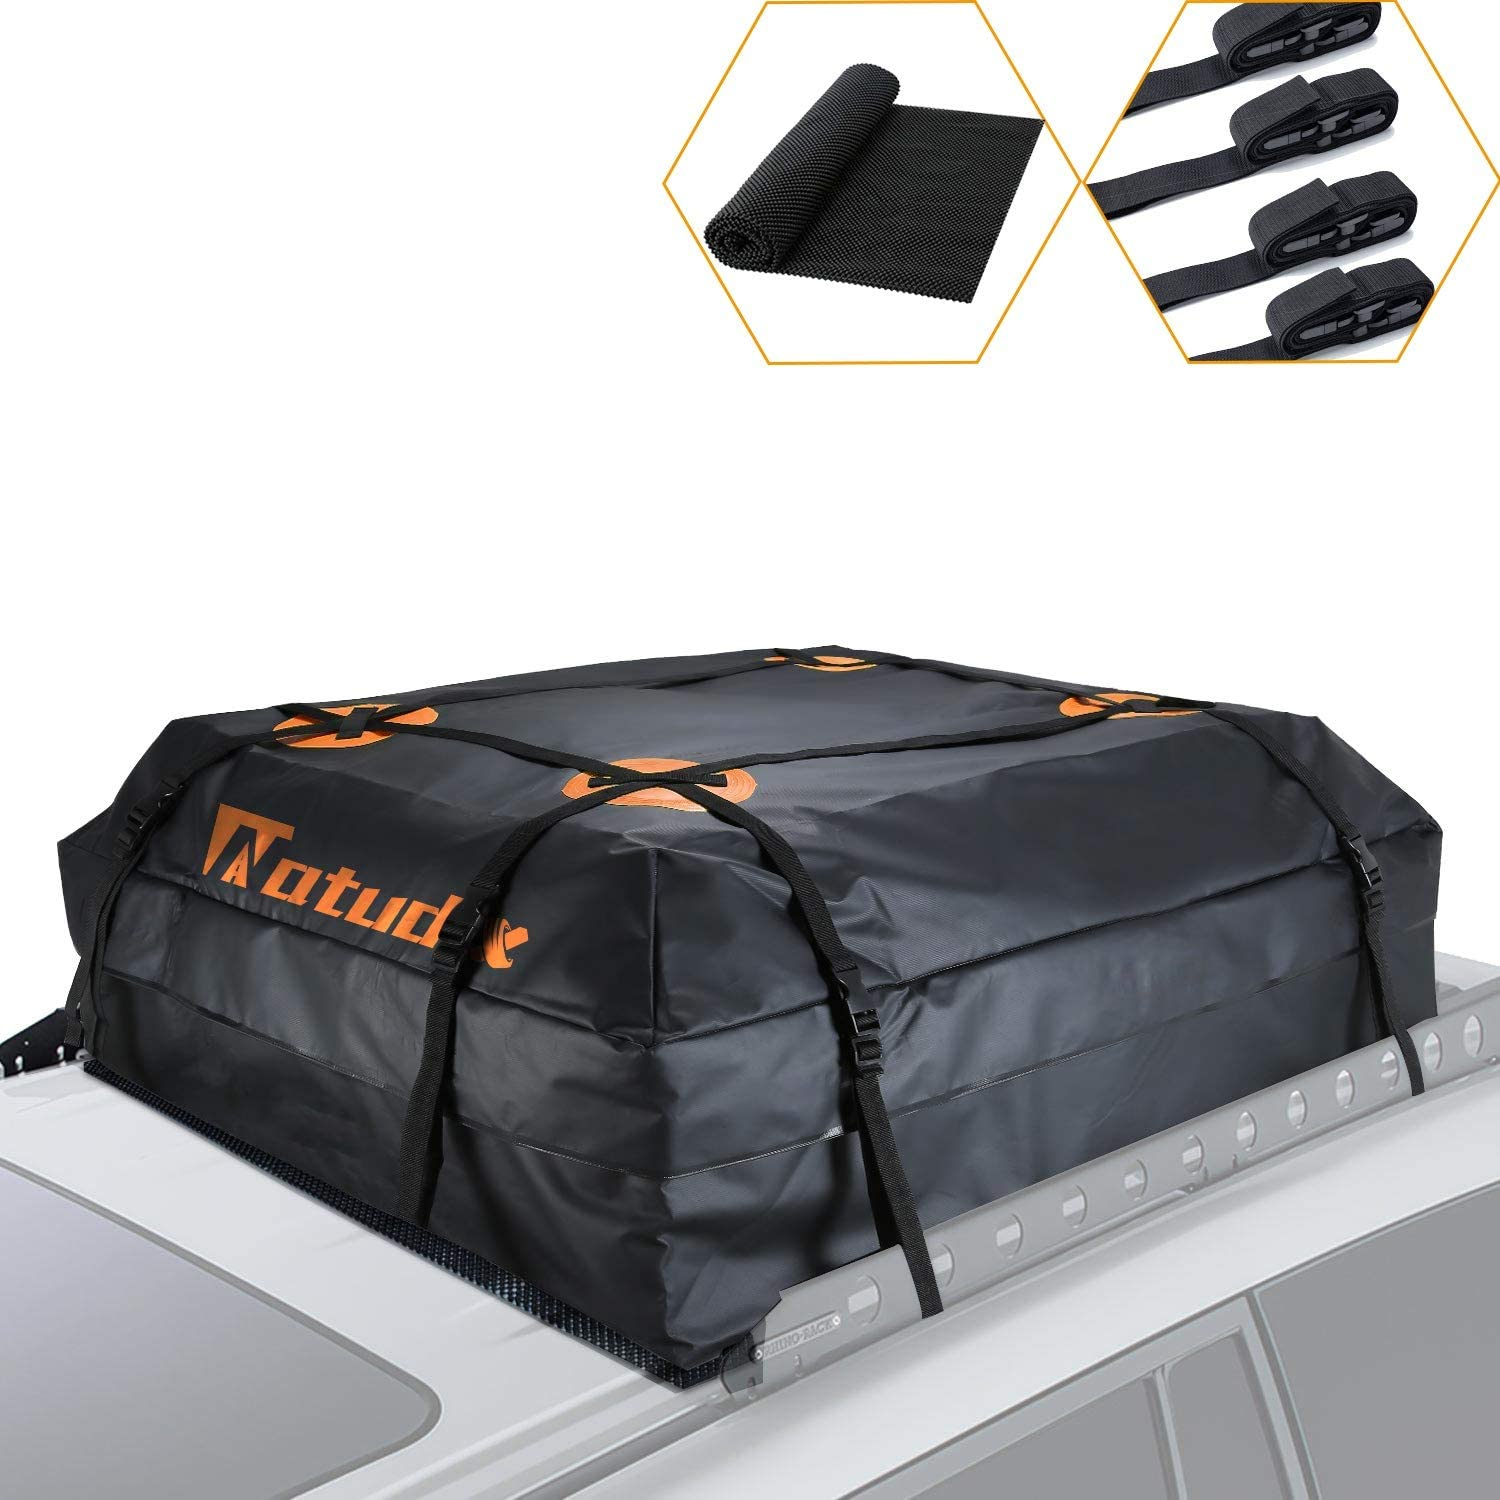 15 Cubic Feet Soft Car Roof Bag with 2 Heavy Duty Adjustable Straps Fits All Cars AUPERTO Rooftop Cargo Carrier Bag